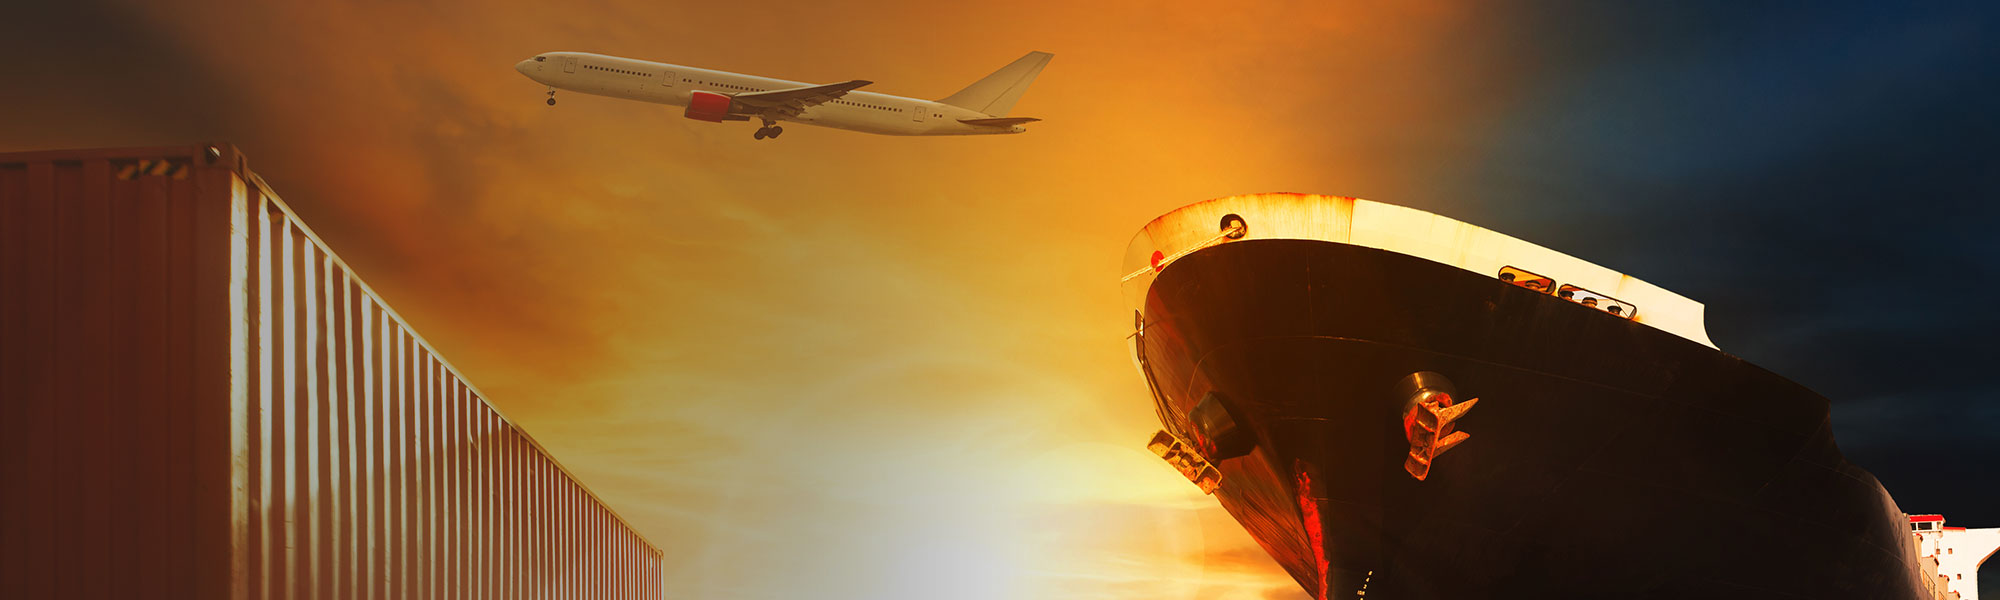 Shipping container, airplane, and boat